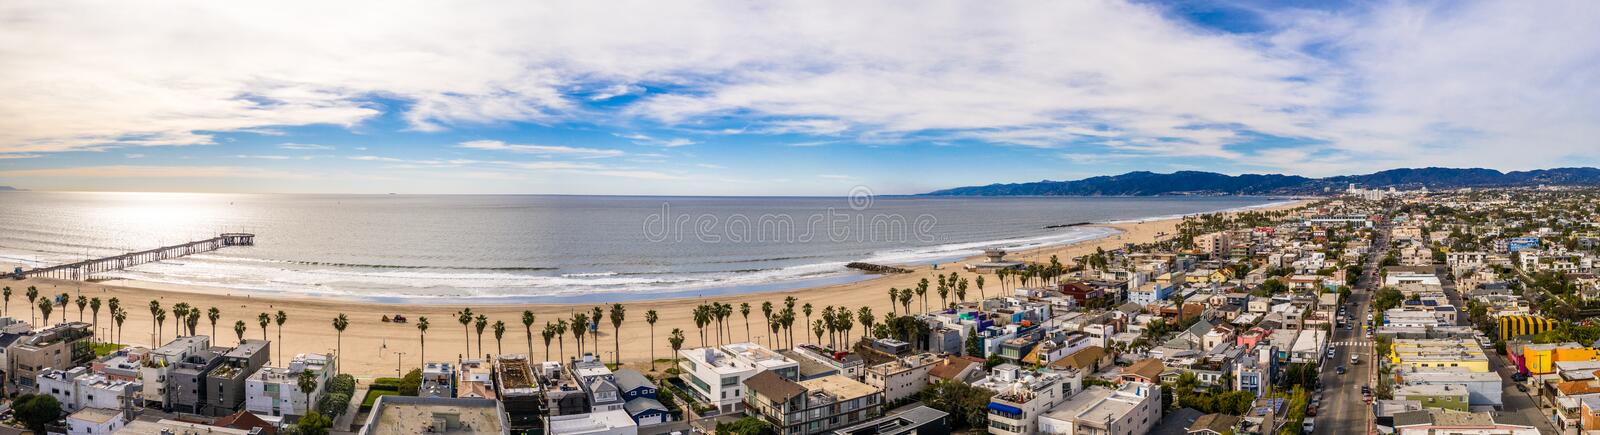 Venice beach Los Angeles California LA Aerial royalty free stock photography